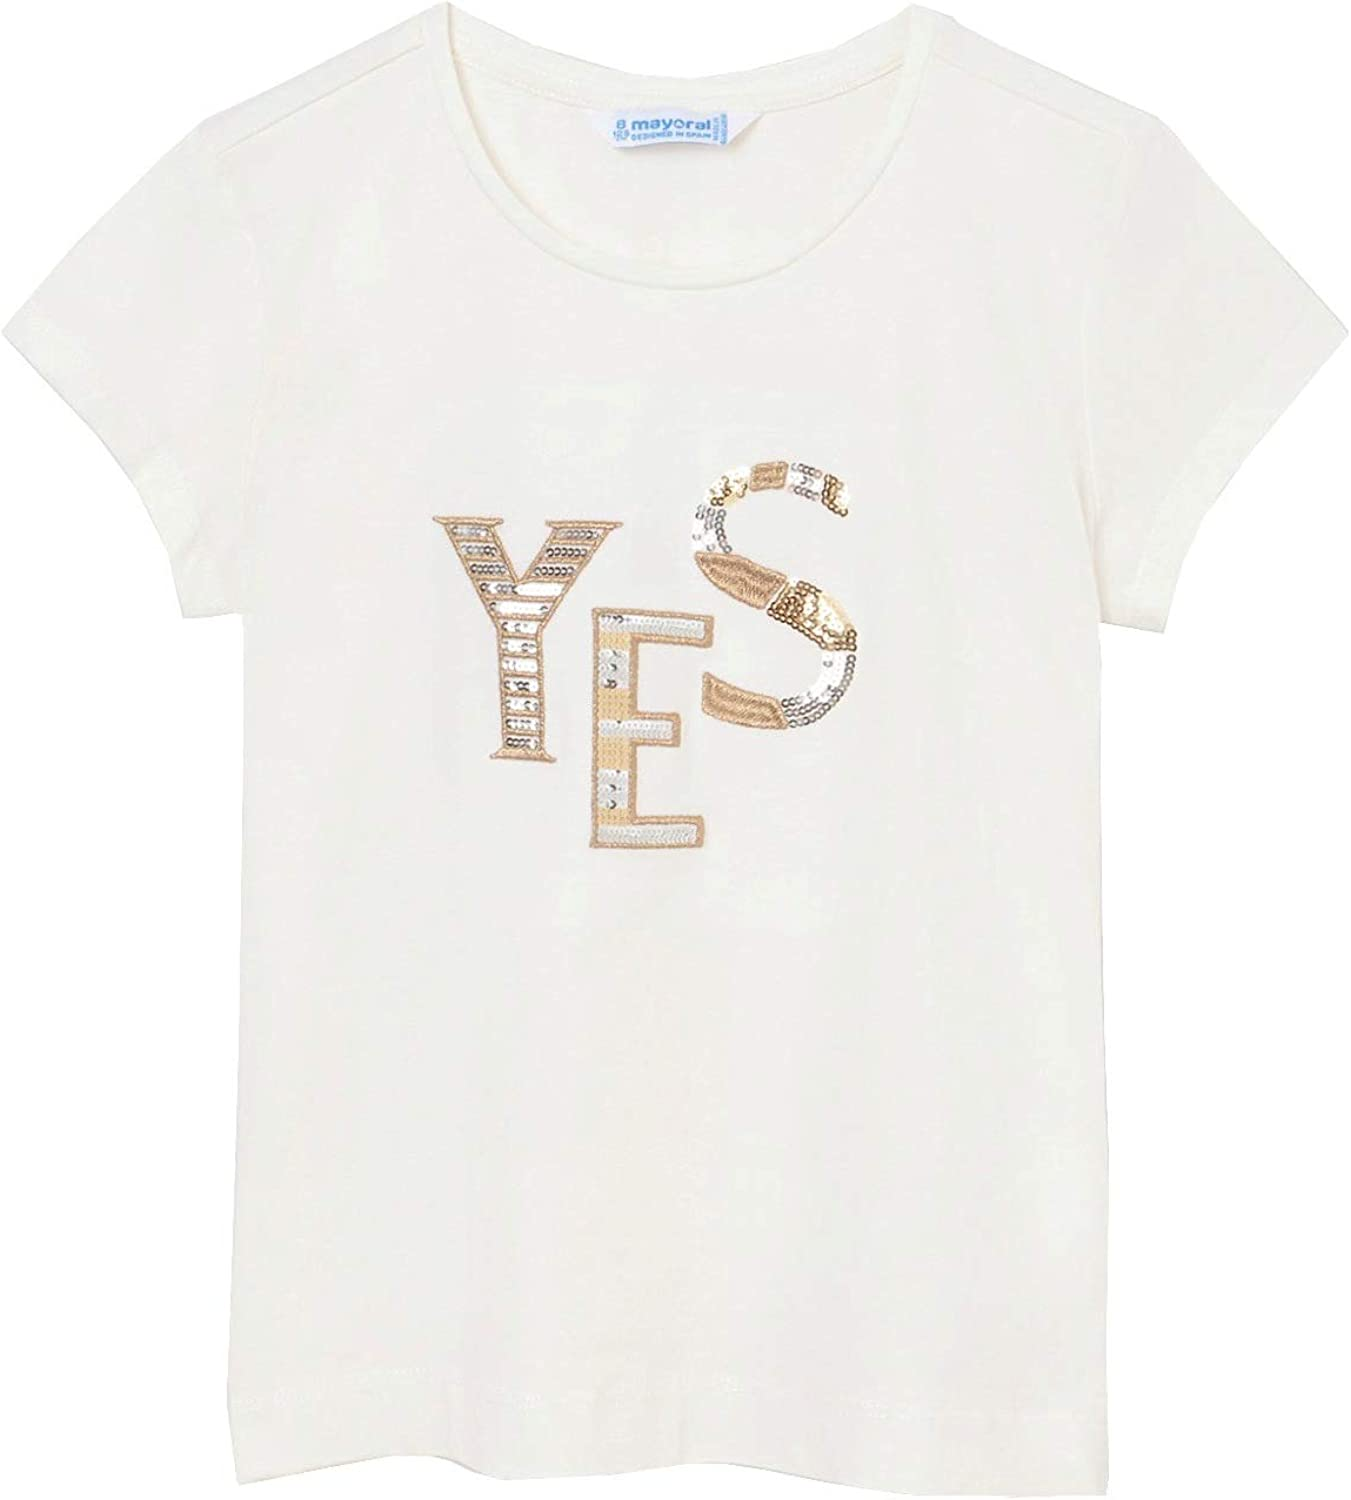 Mayoral - Basic s/s t-Shirt for Girls - 0854, Natural